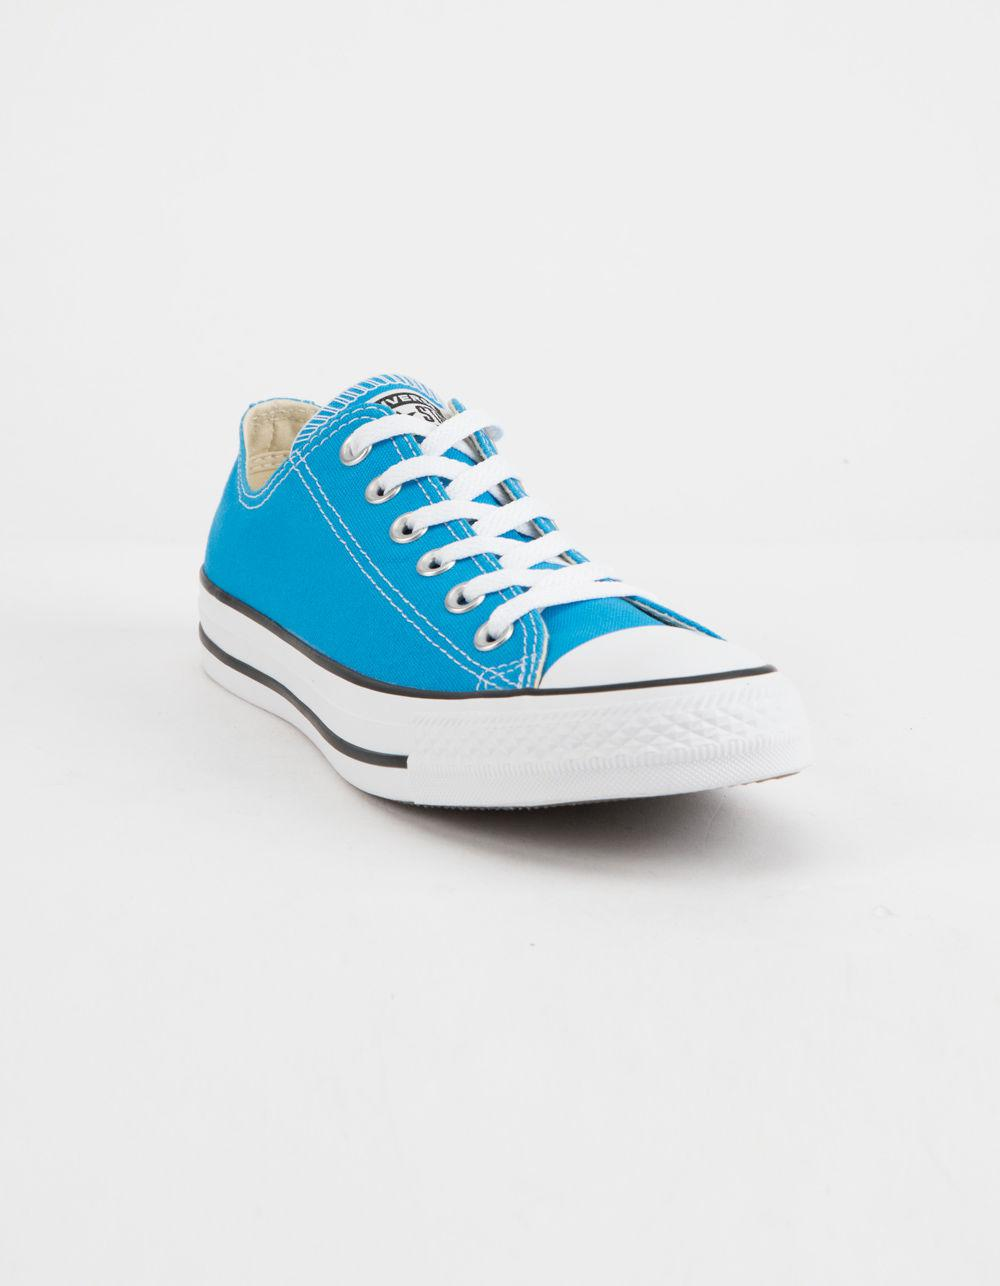 Lyst - Converse Chuck Taylor All Star Blue Hero Low Top Womens Shoes in Blue 7502753e9